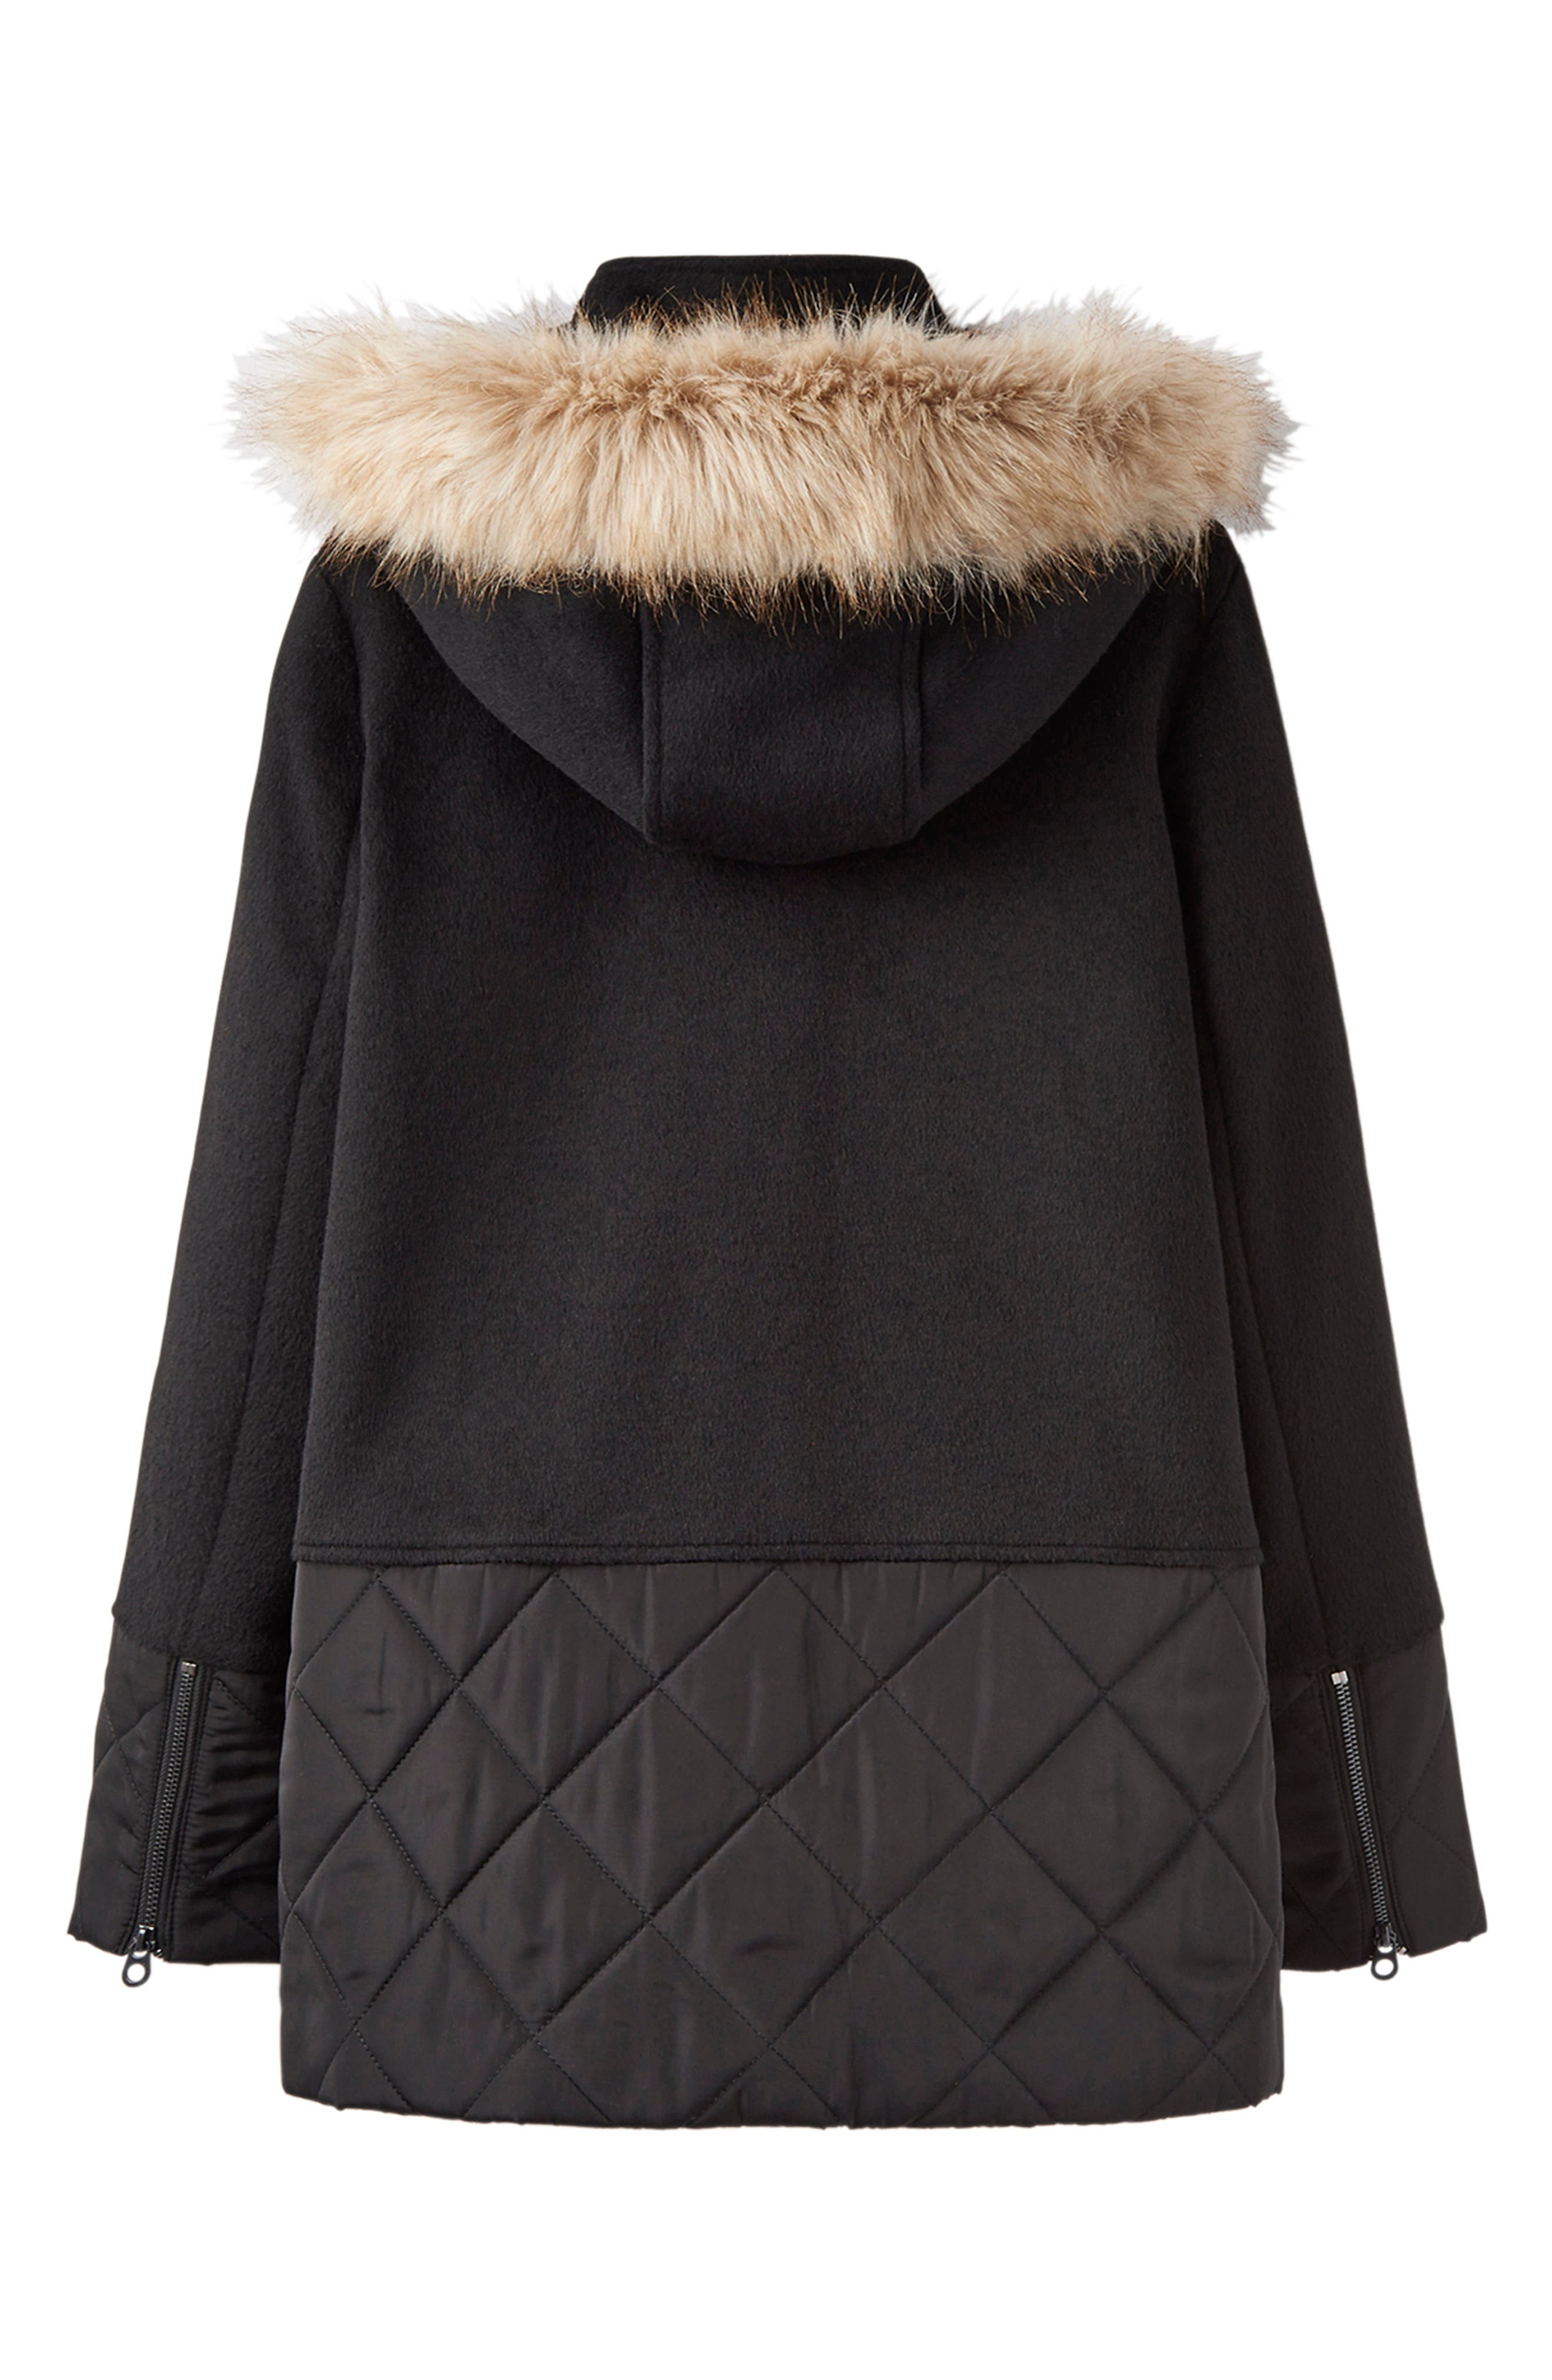 Mixed Texture Hooded Coat with Faux Fur Trim,                             Alternate thumbnail 8, color,                             BLACK